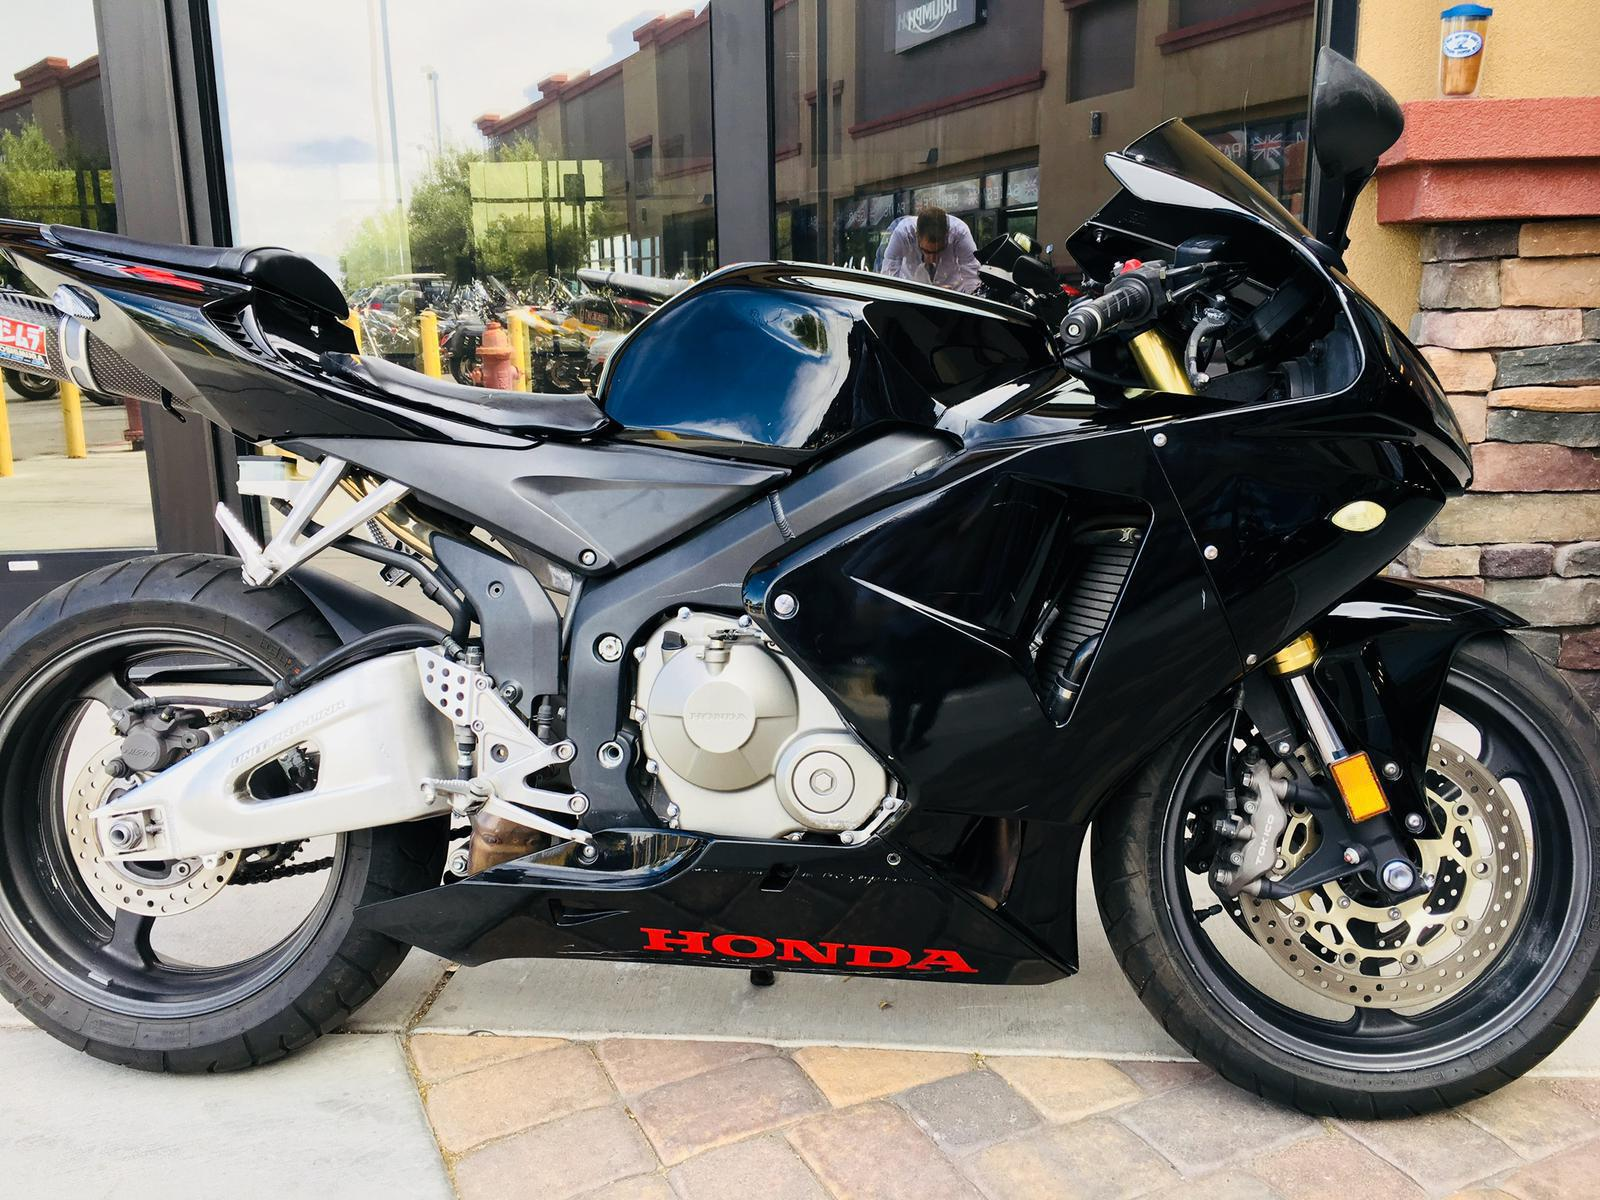 2006 Honda CBR600RR for sale in Las Vegas, NV. Freedom Euro Cycle